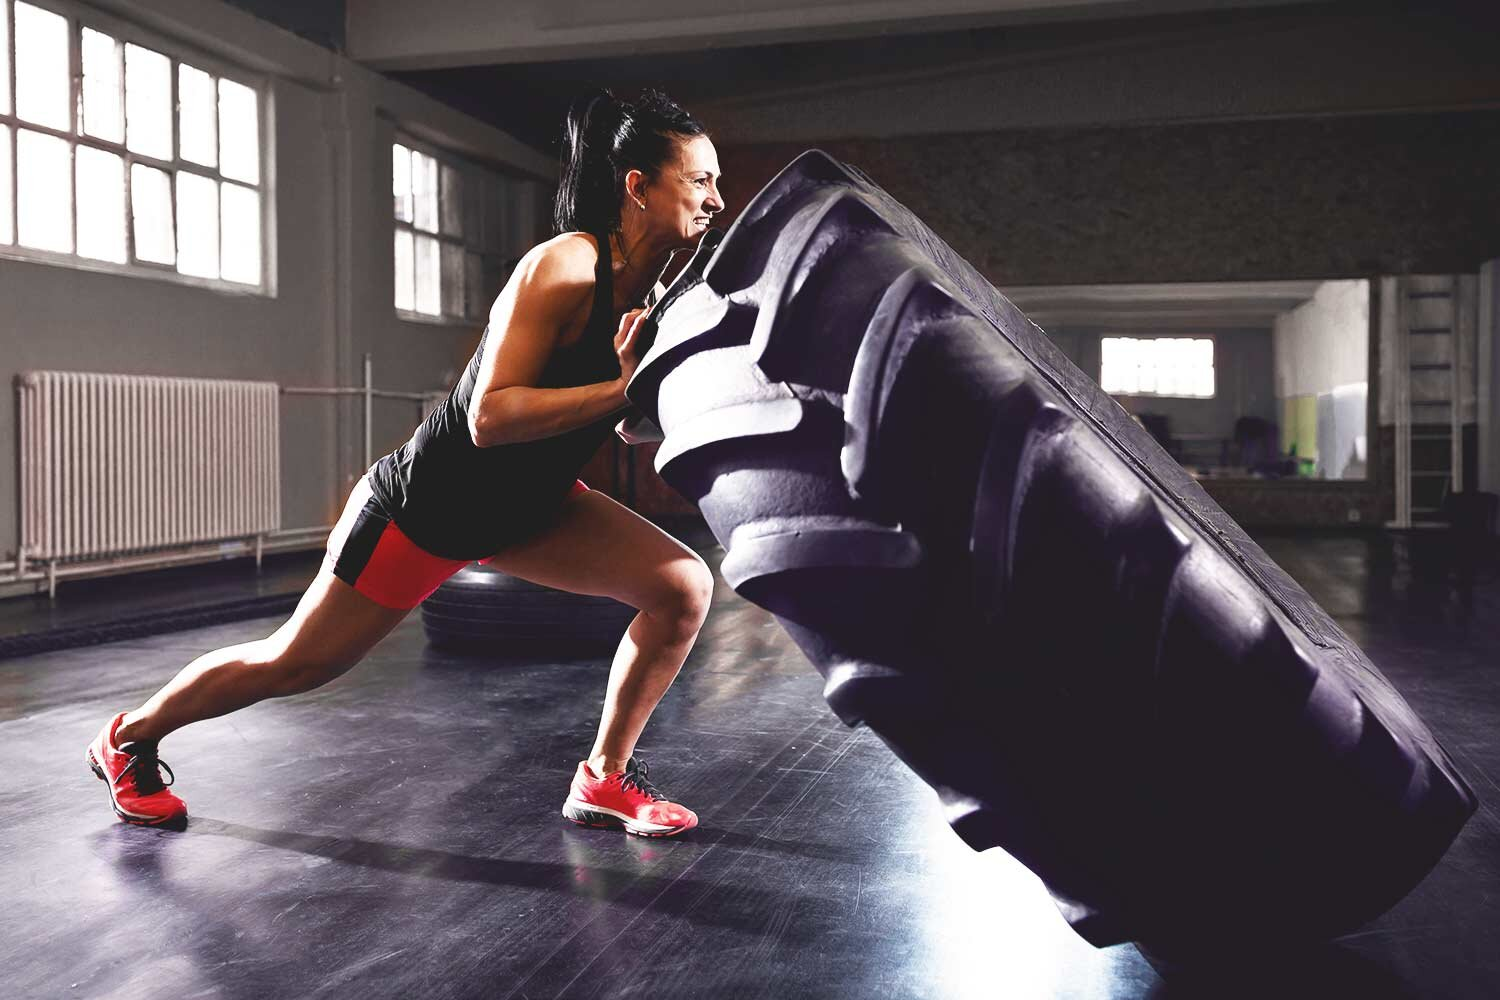 Pillar-content-PHOTypes_-How-is-functional-training-categorized_.jpg